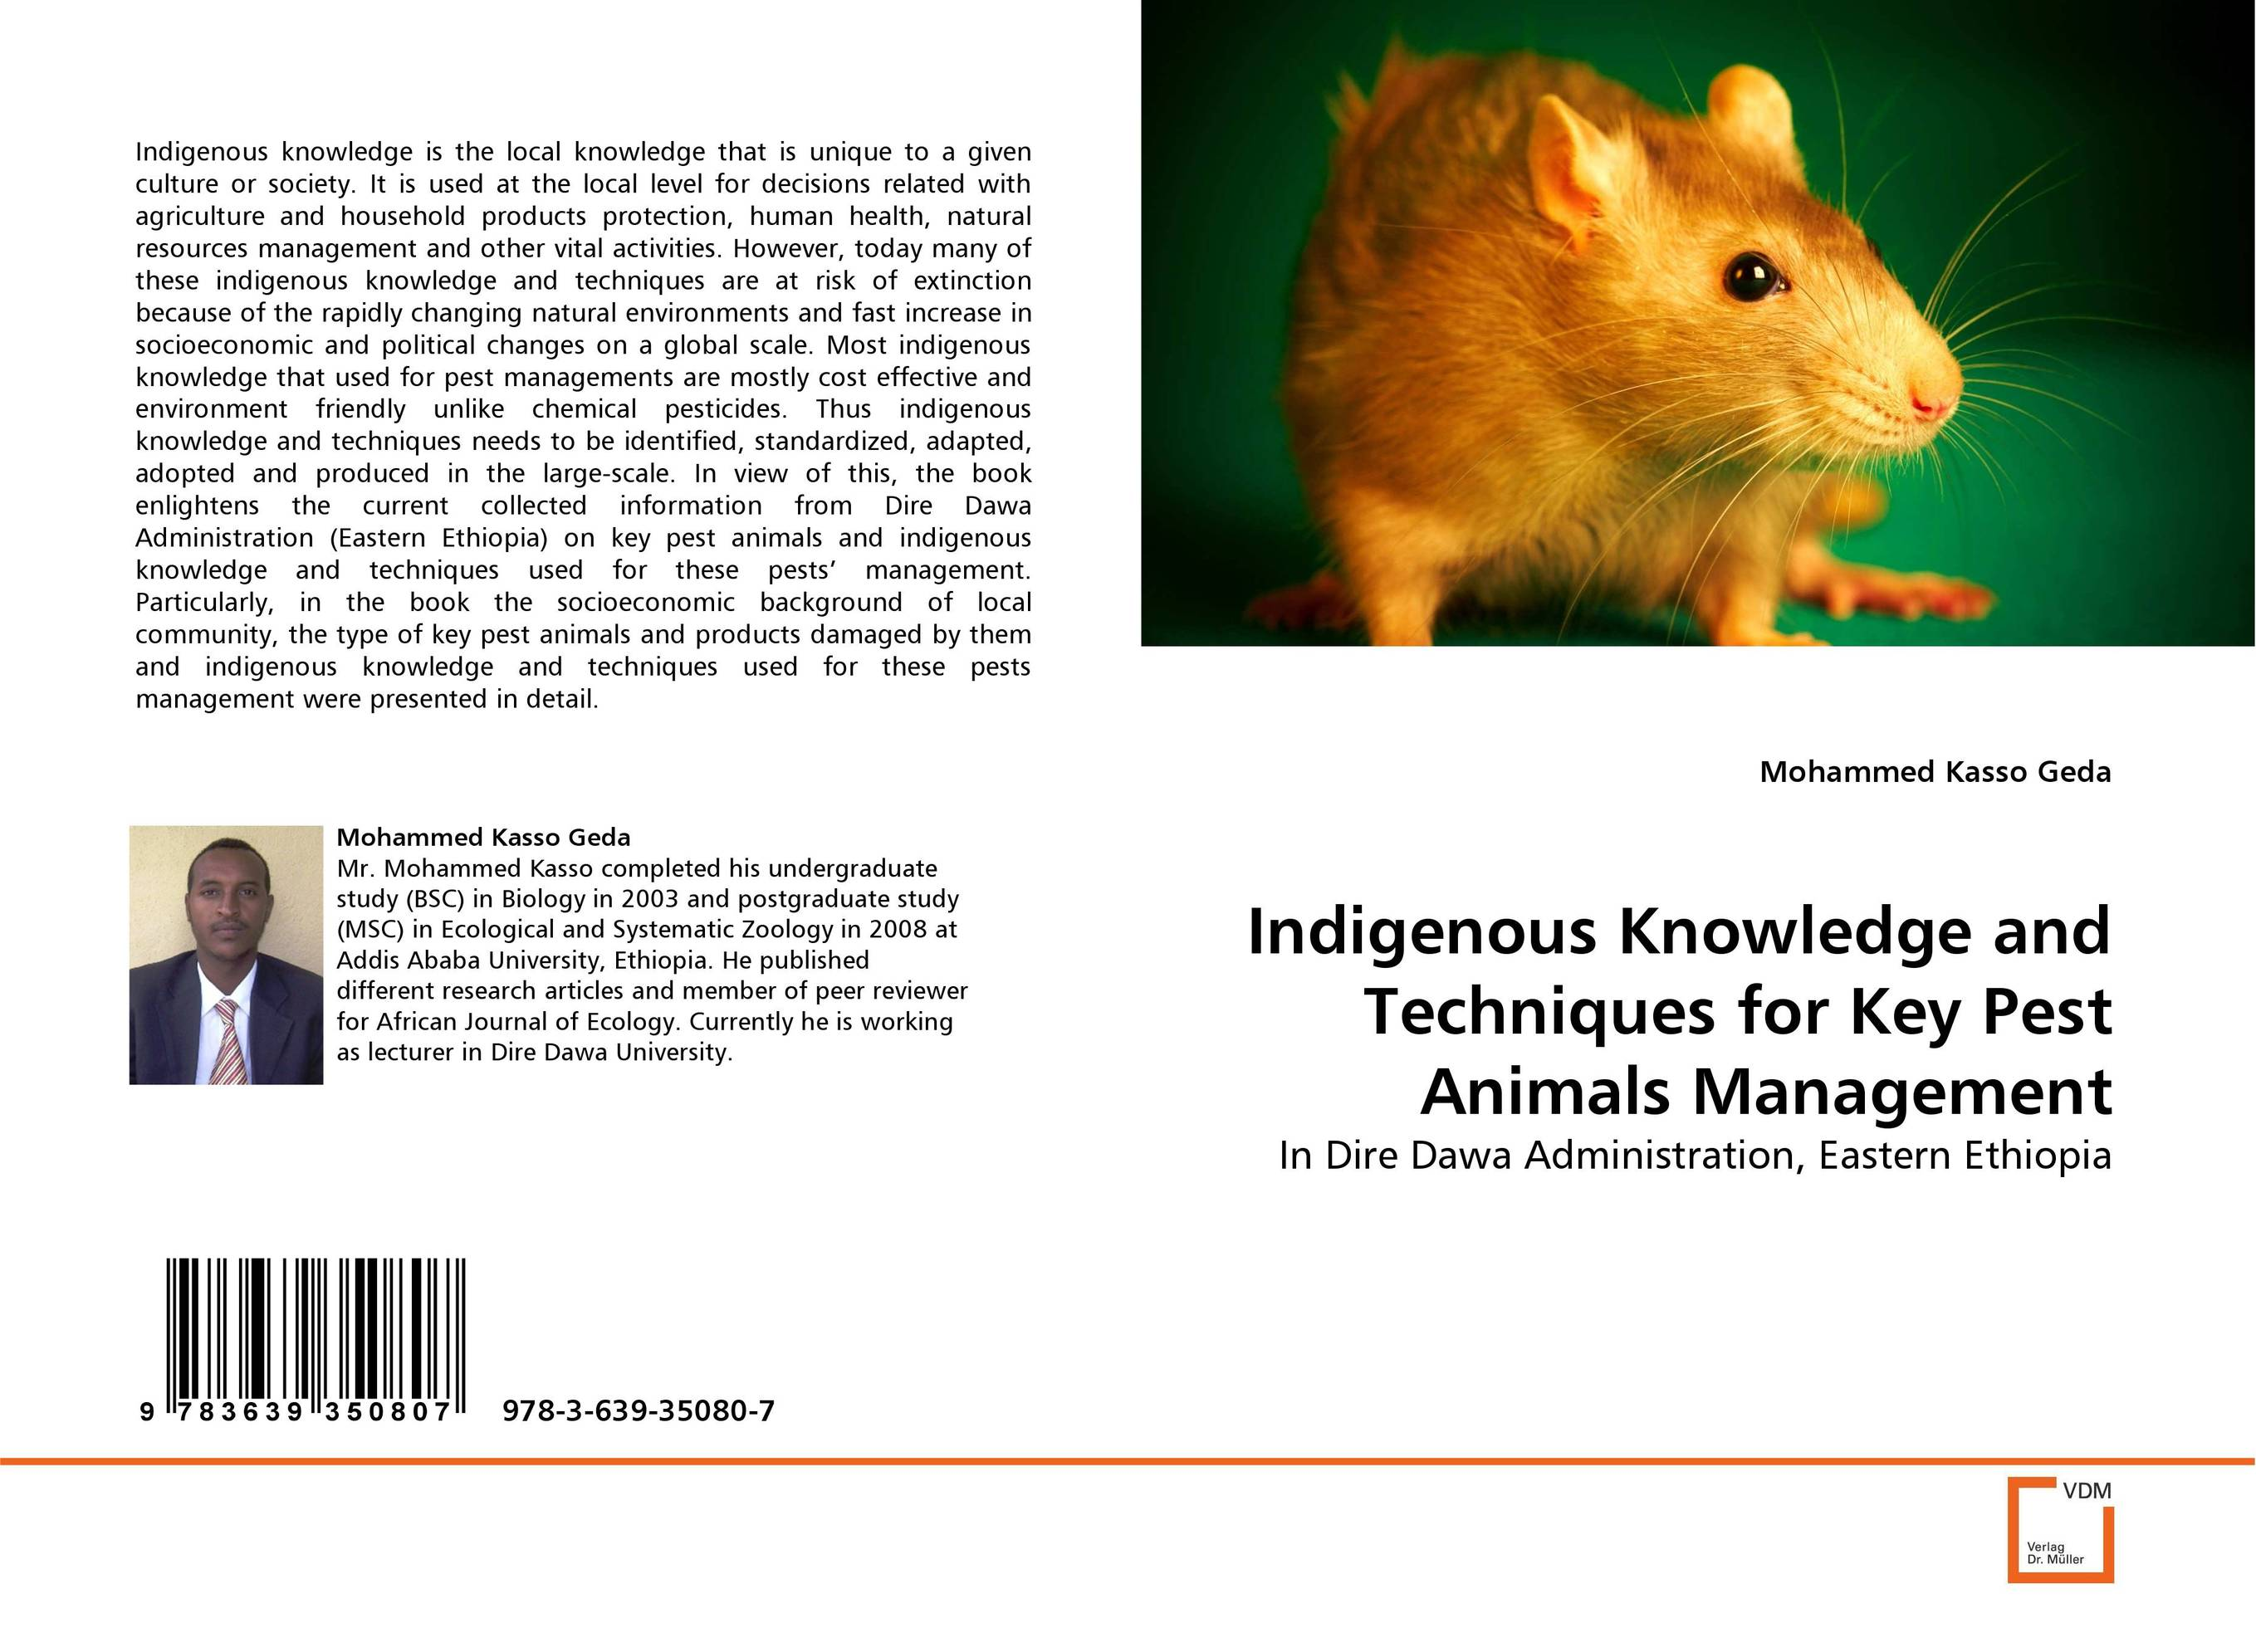 Indigenous Knowledge and Techniques for Key Pest Animals Management knowledge management – classic